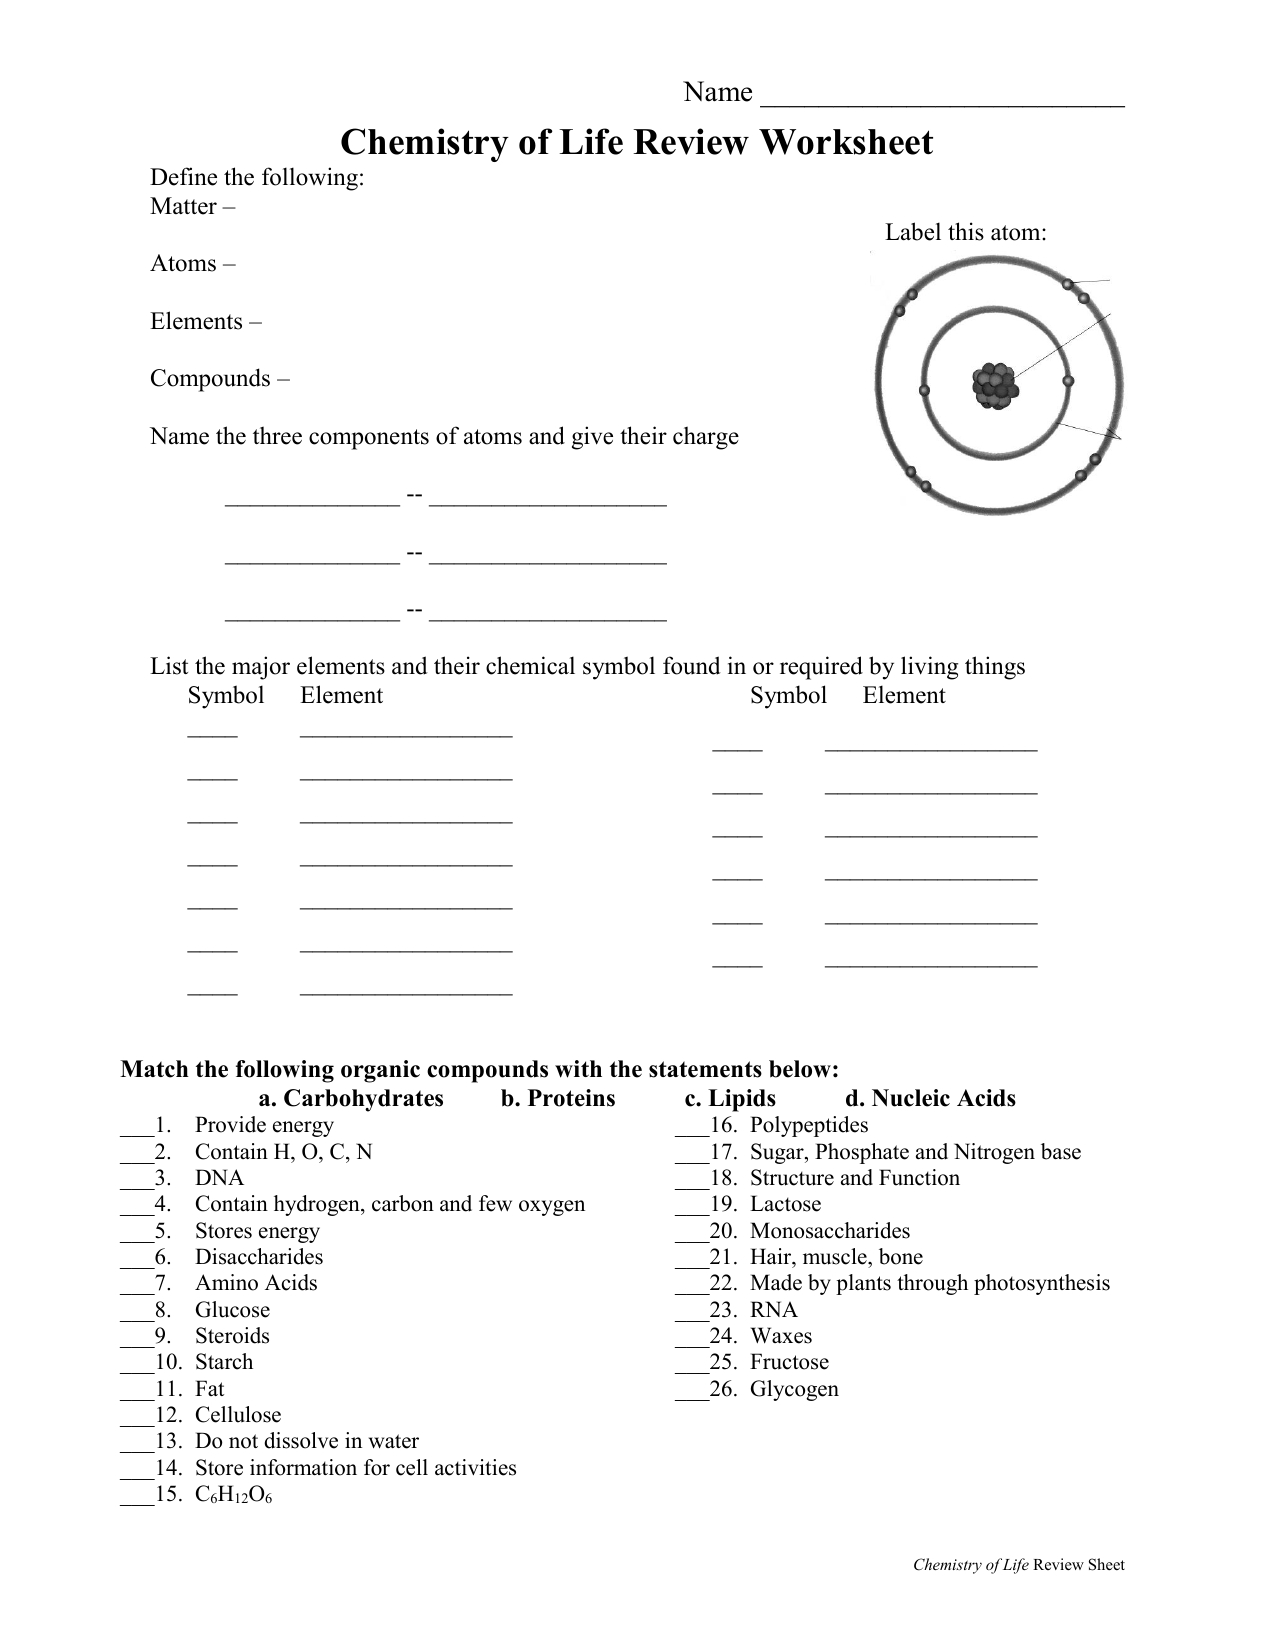 Chemistry Of Life Review Worksheet Within Chemistry Of Life Worksheet Answers